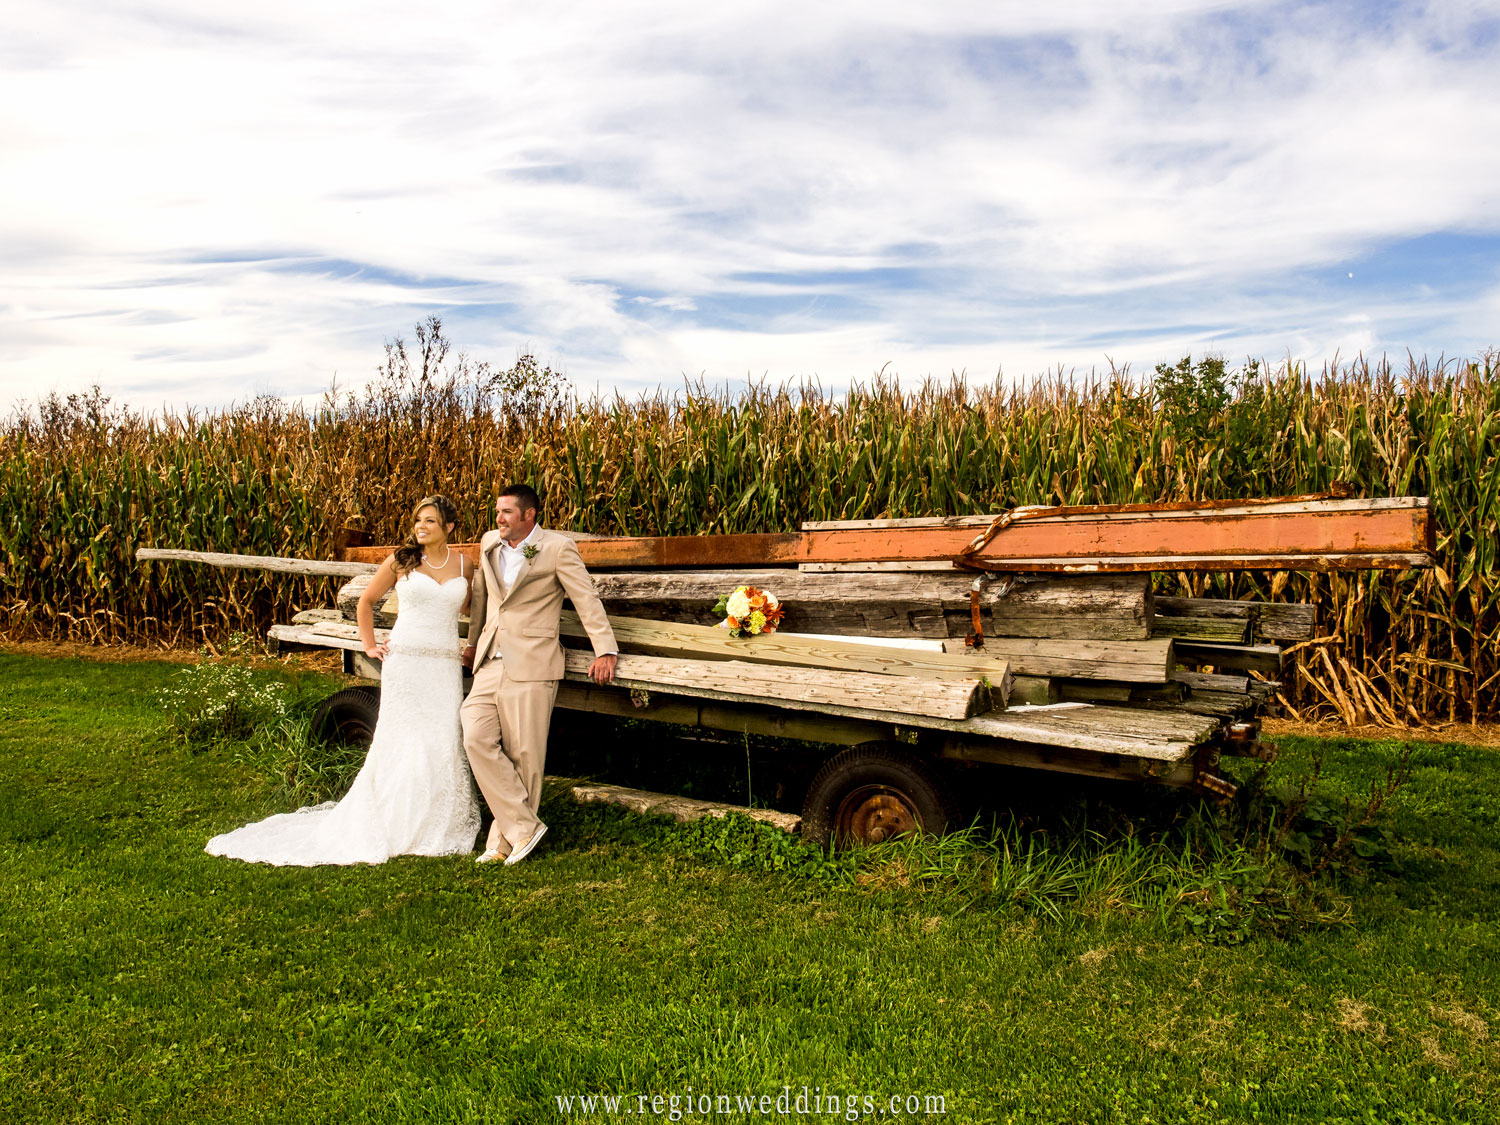 Rustic Indiana field wedding photo.